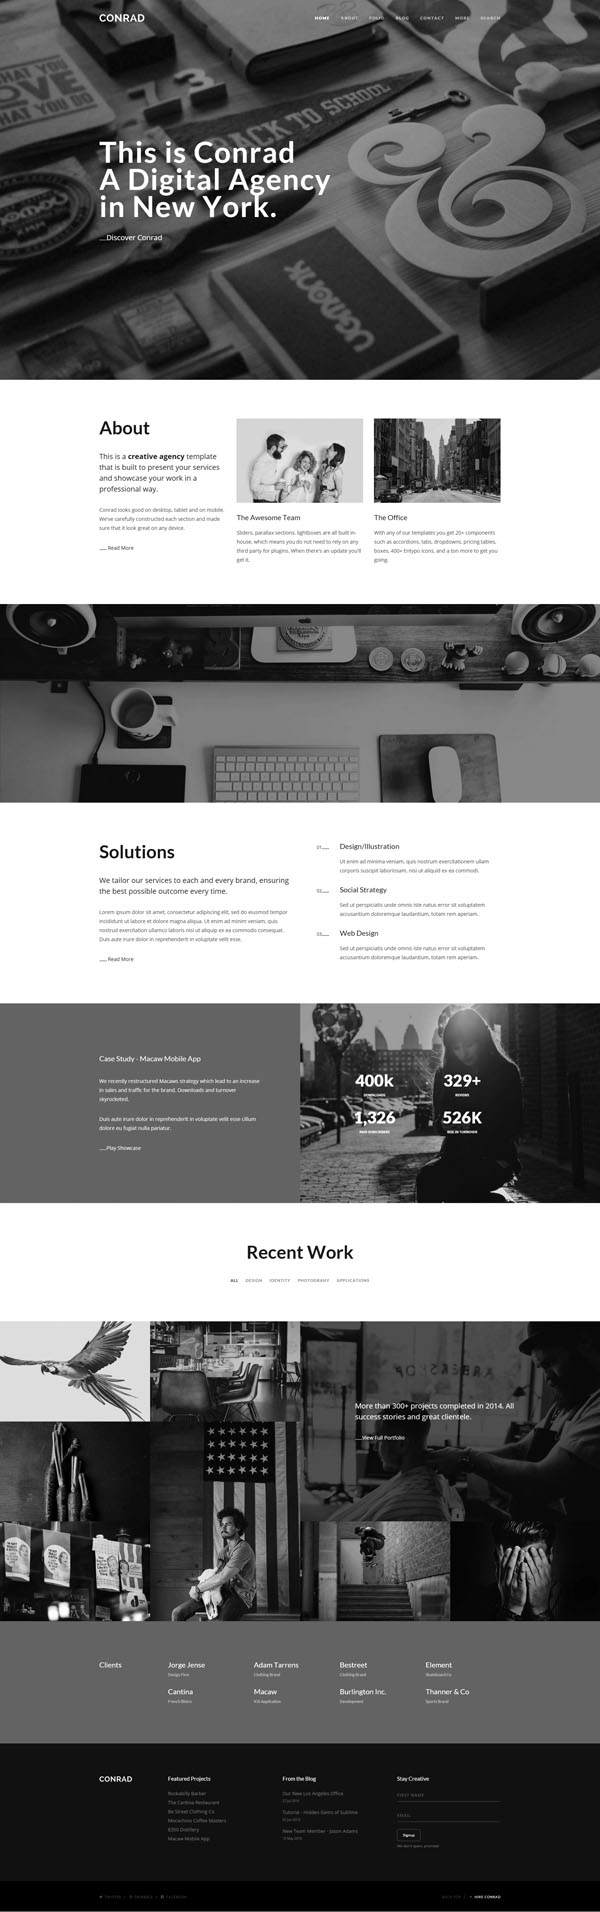 Responsive HTML5 Web Templates Design | Design | Graphic Design Junction